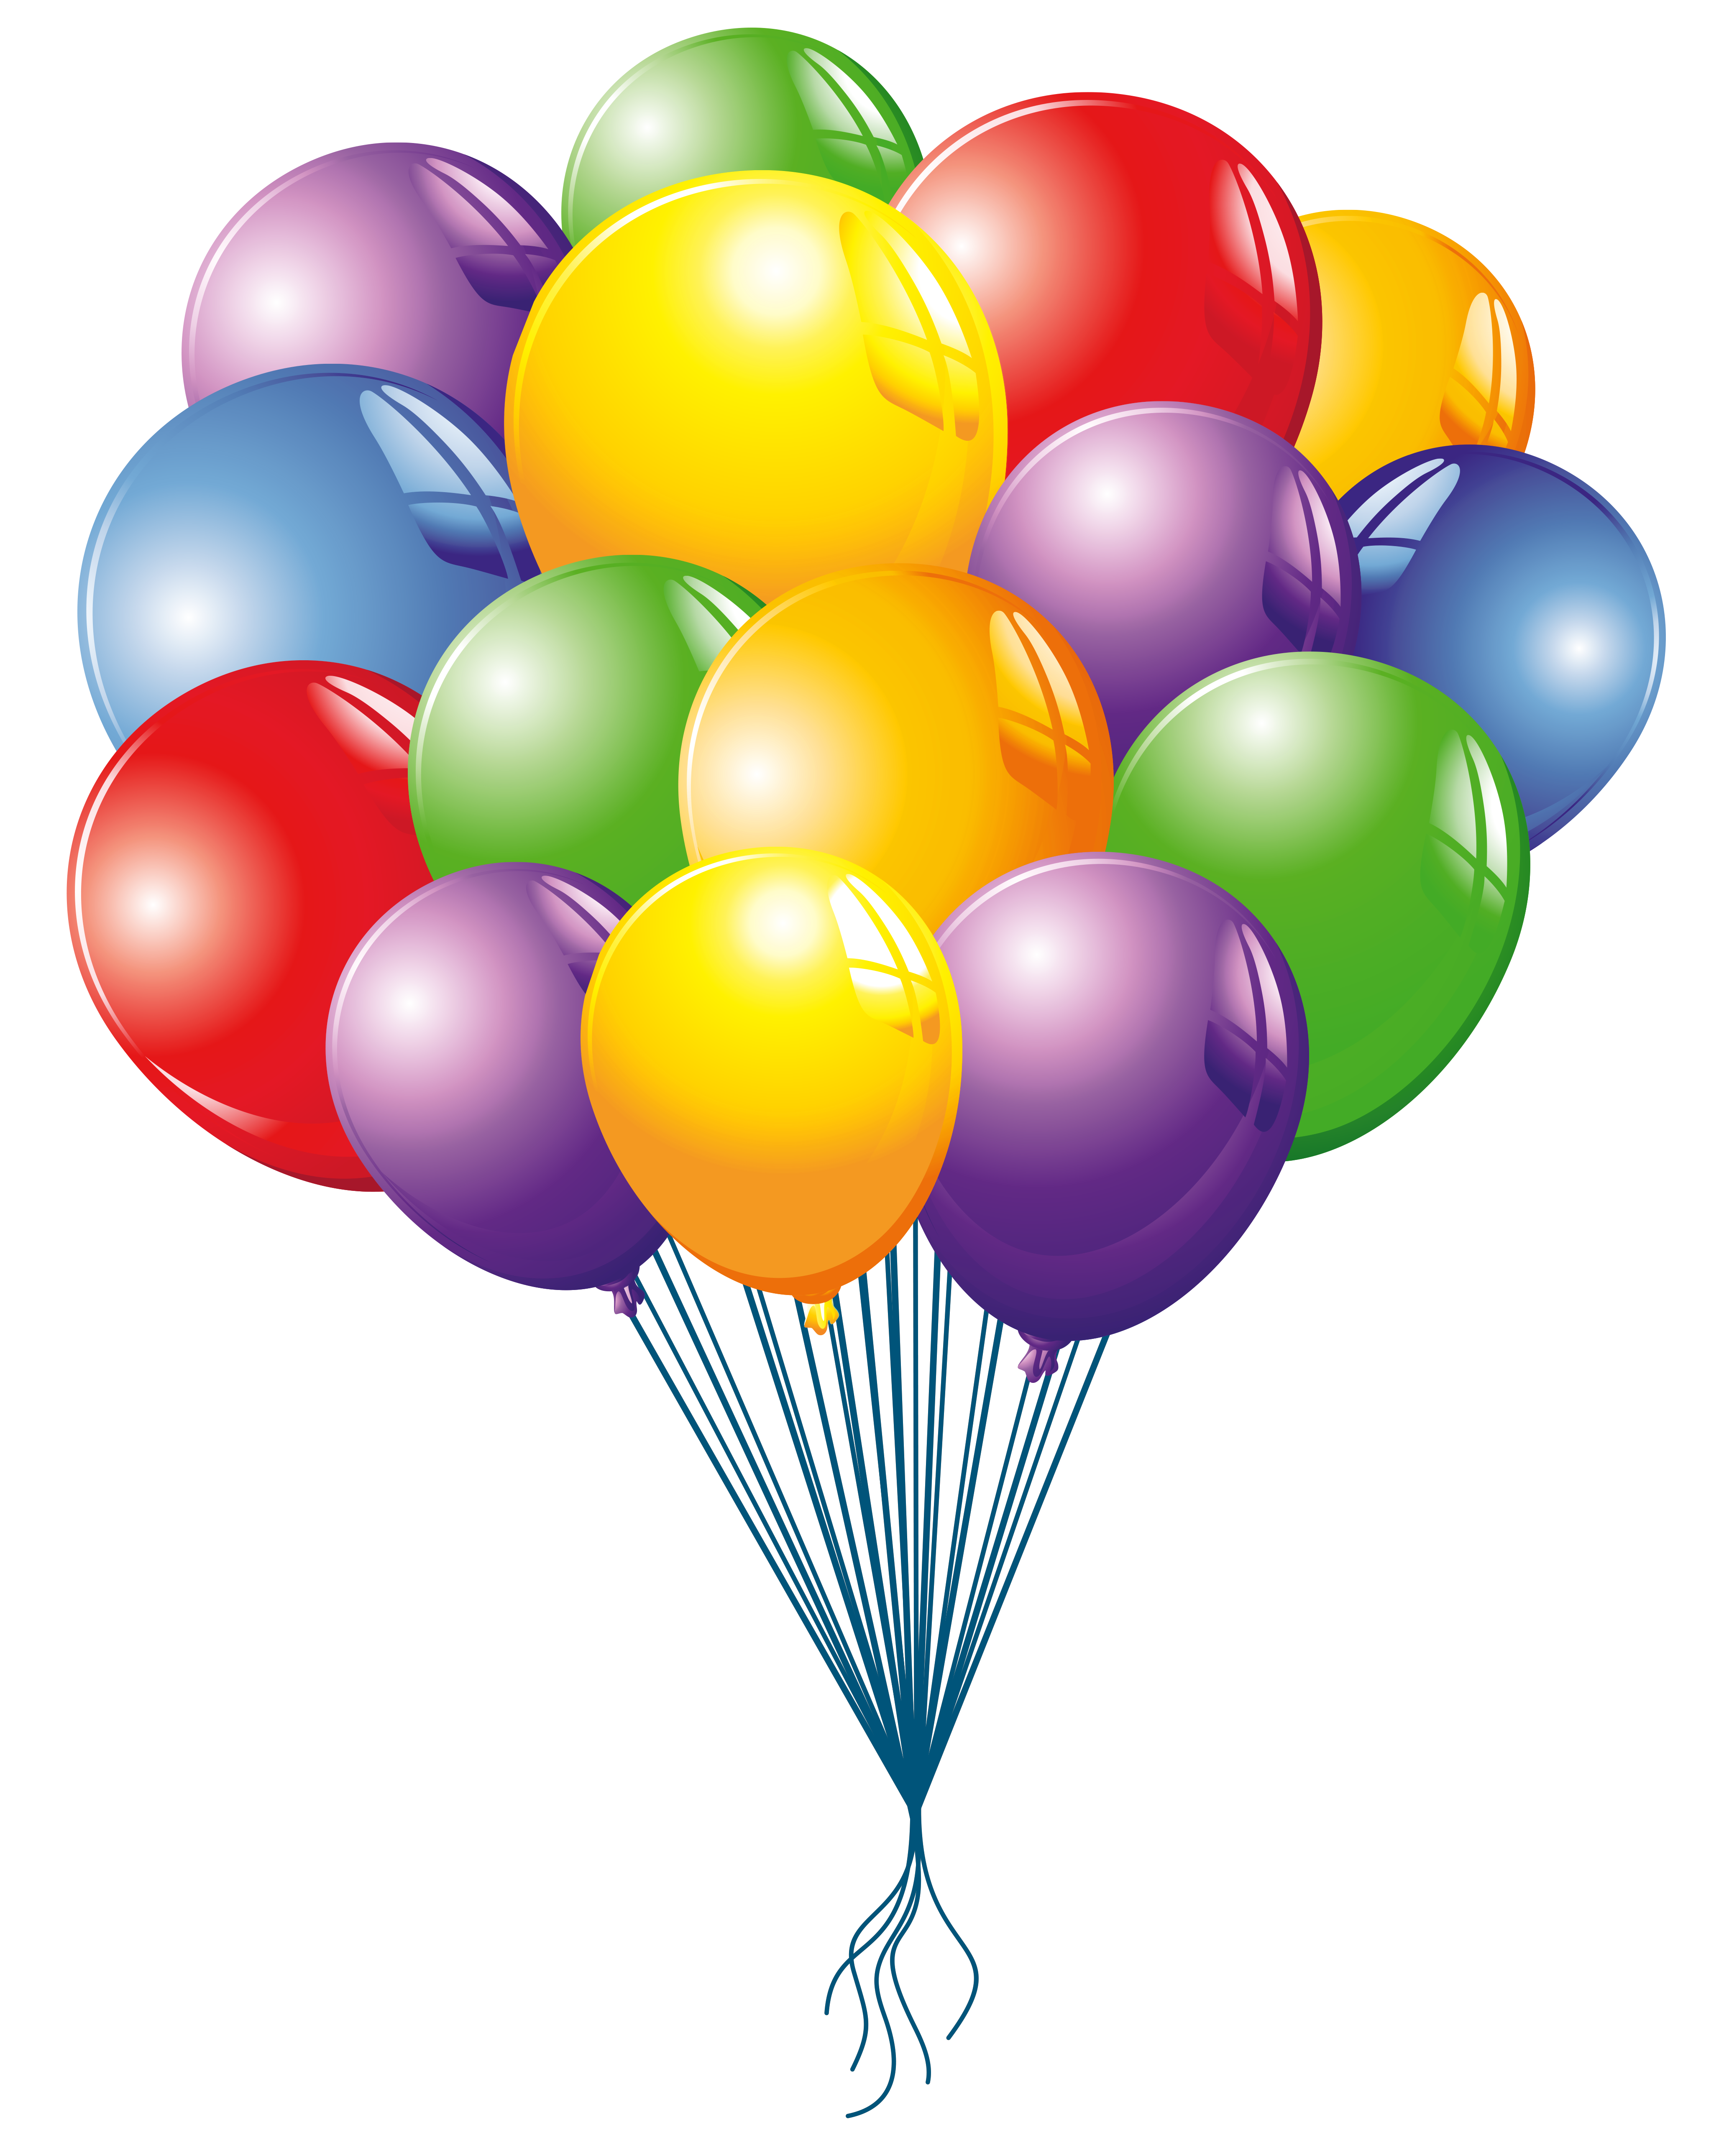 Balloons Clipart Image.